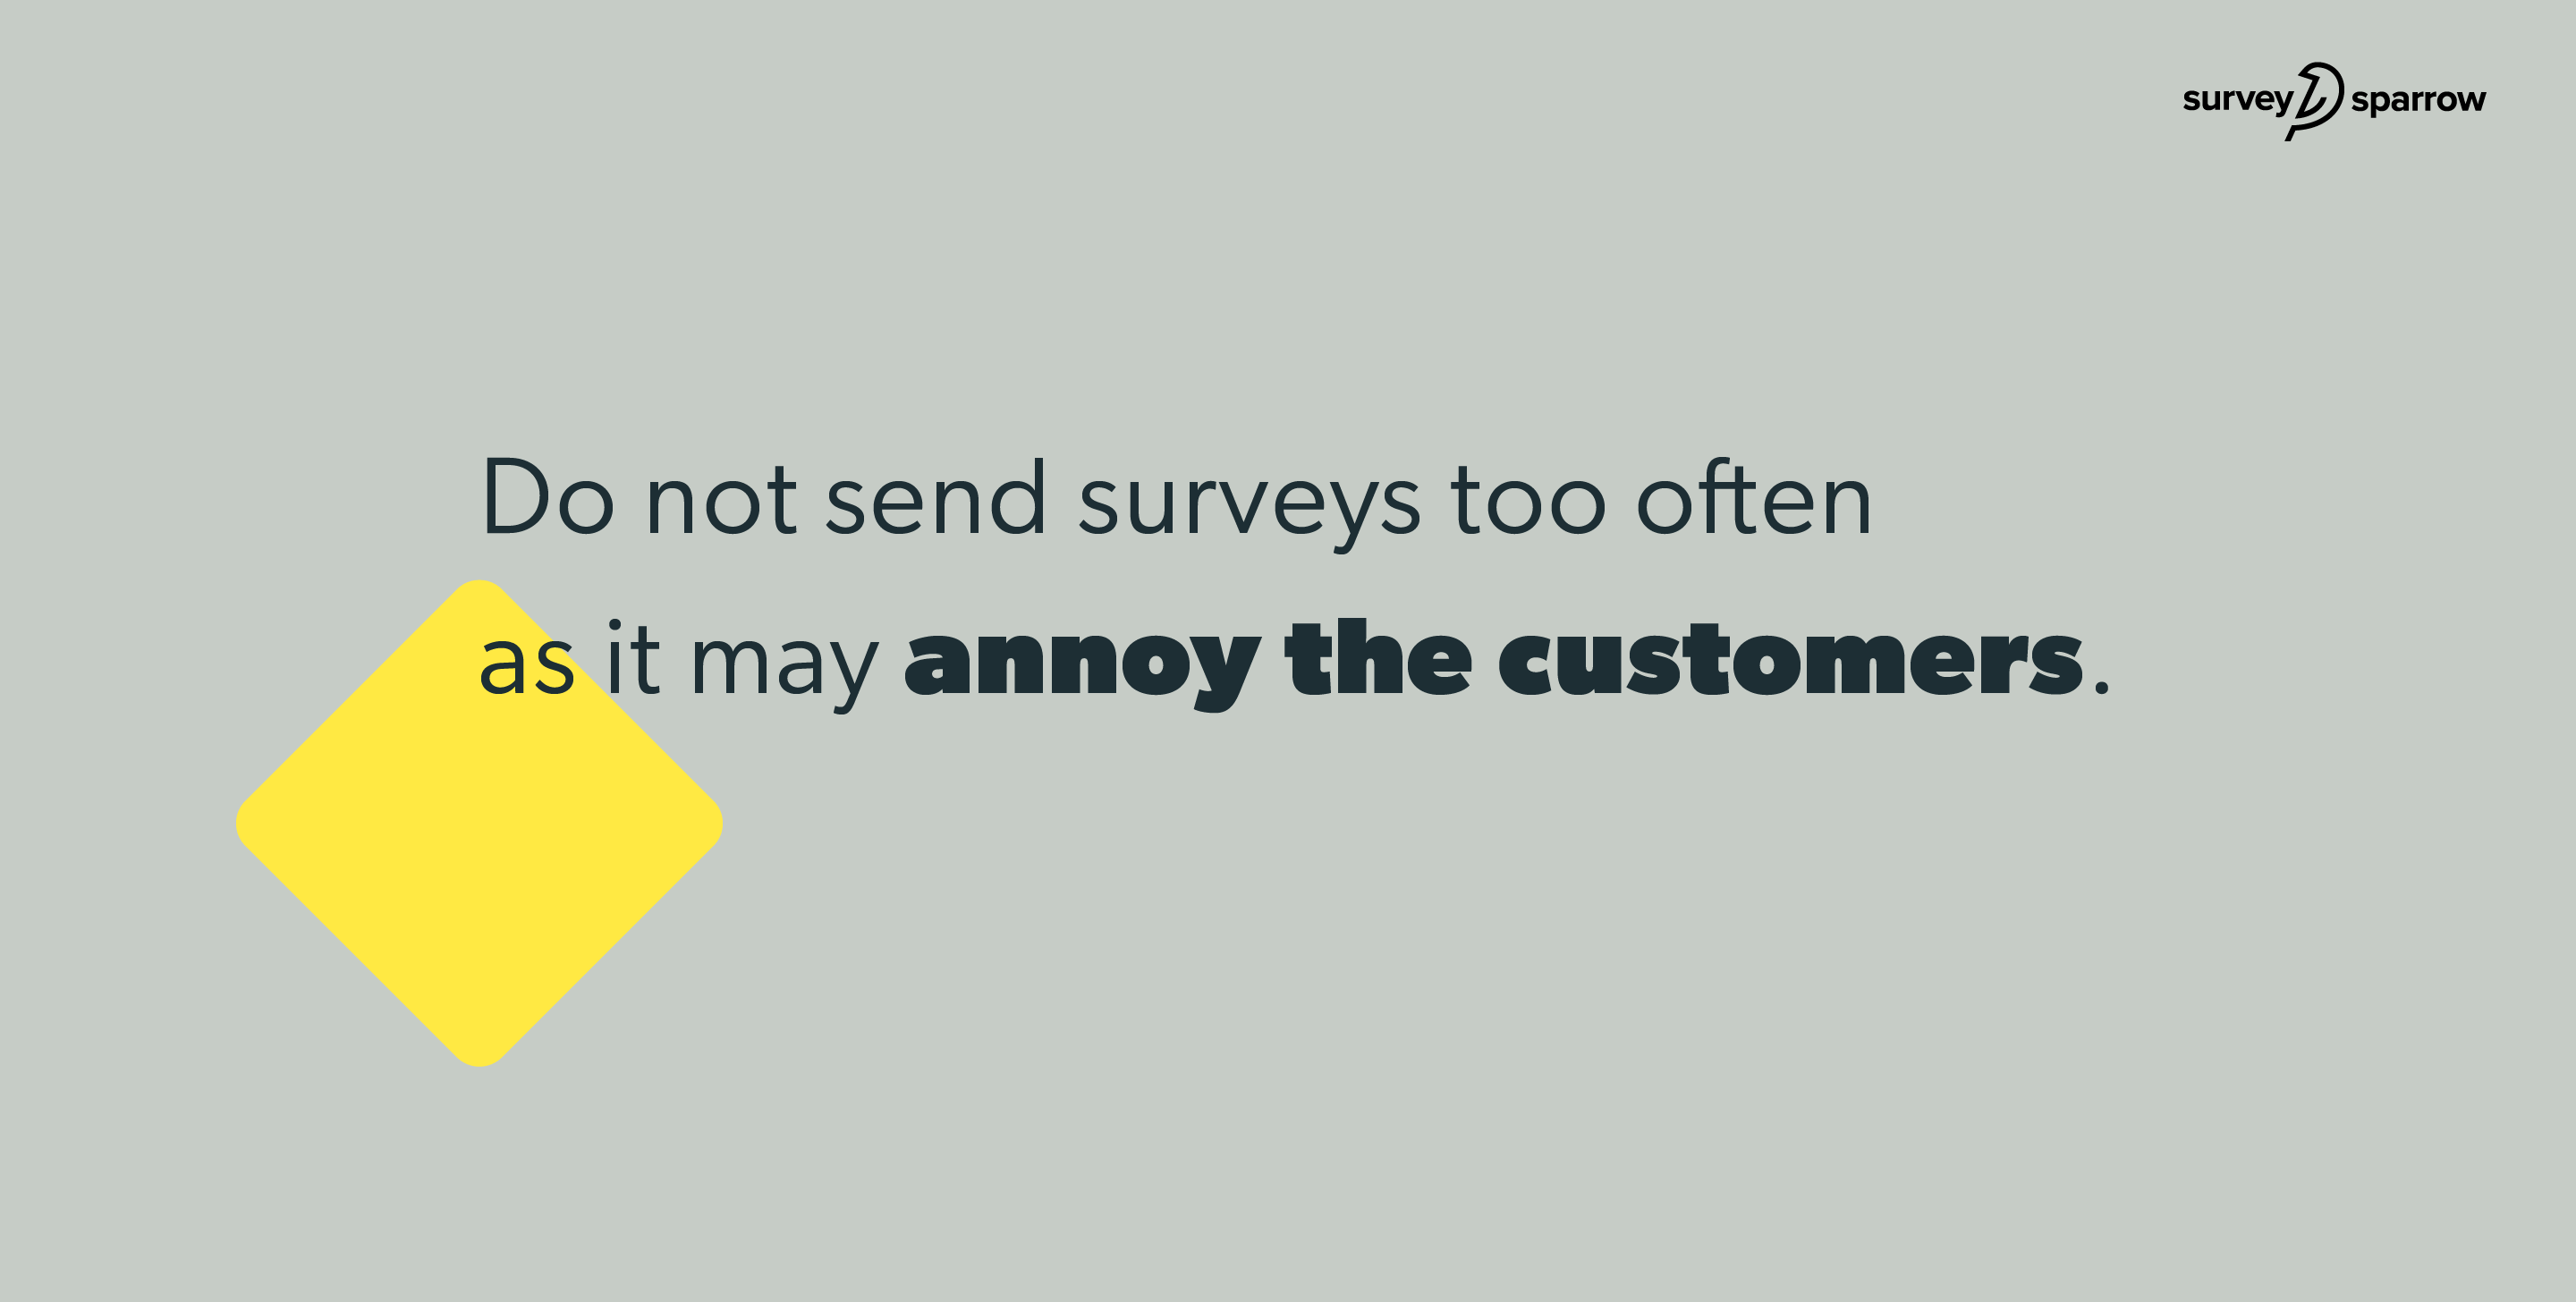 Do not send surveys too often as it may annoy the customers.